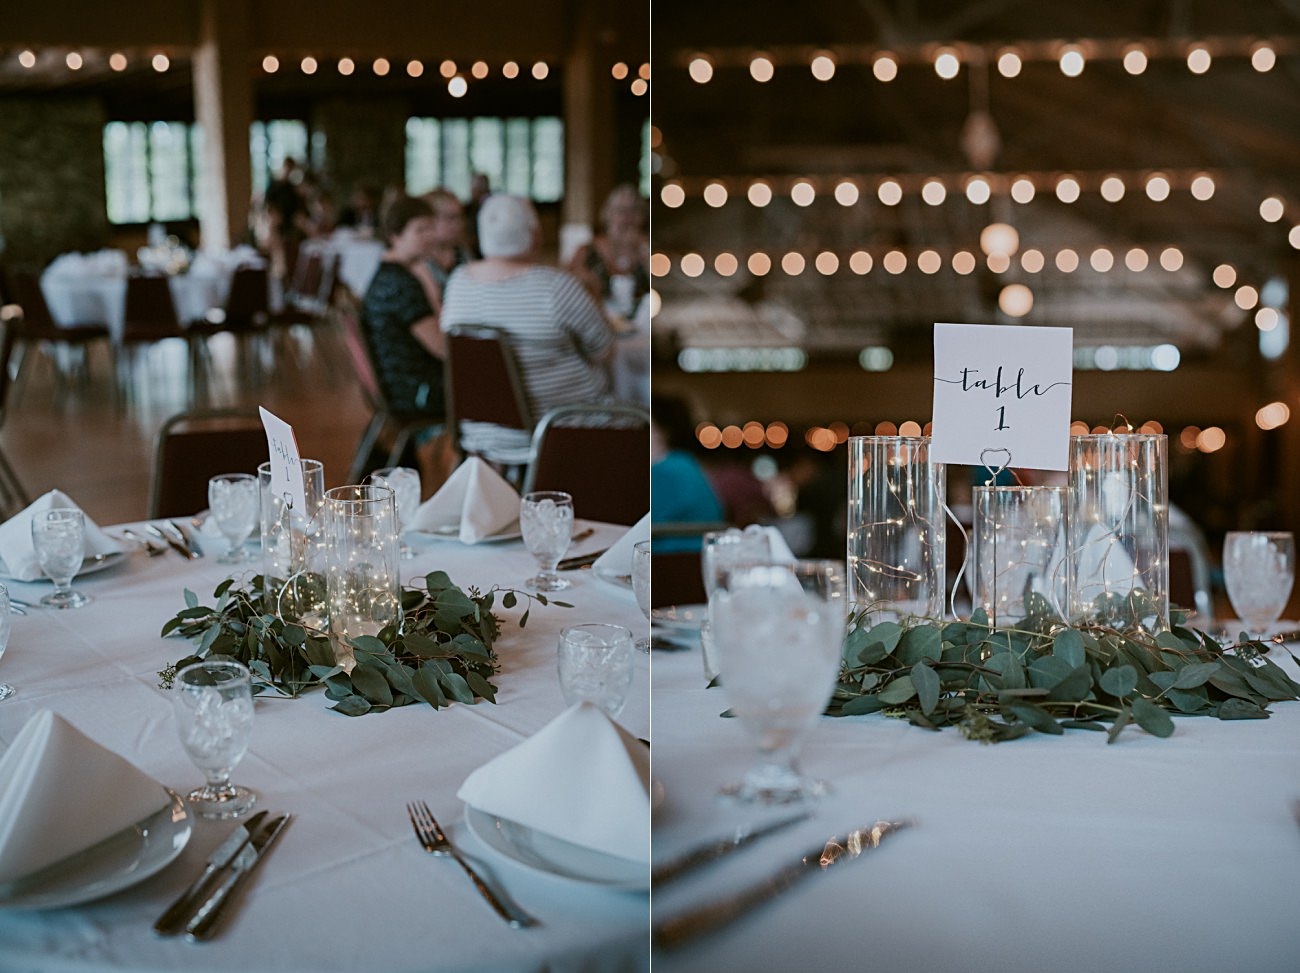 Rothschild Pavillion Wedding Reception in Wausau Wisconsin, Mountaintop Wedding, Wedding Dress with sleeves, Rib Mountain Wedding in Wausau Wisconsin - Mountaintop Wedding, Wisconsin Wedding - Natural Intuition Photography